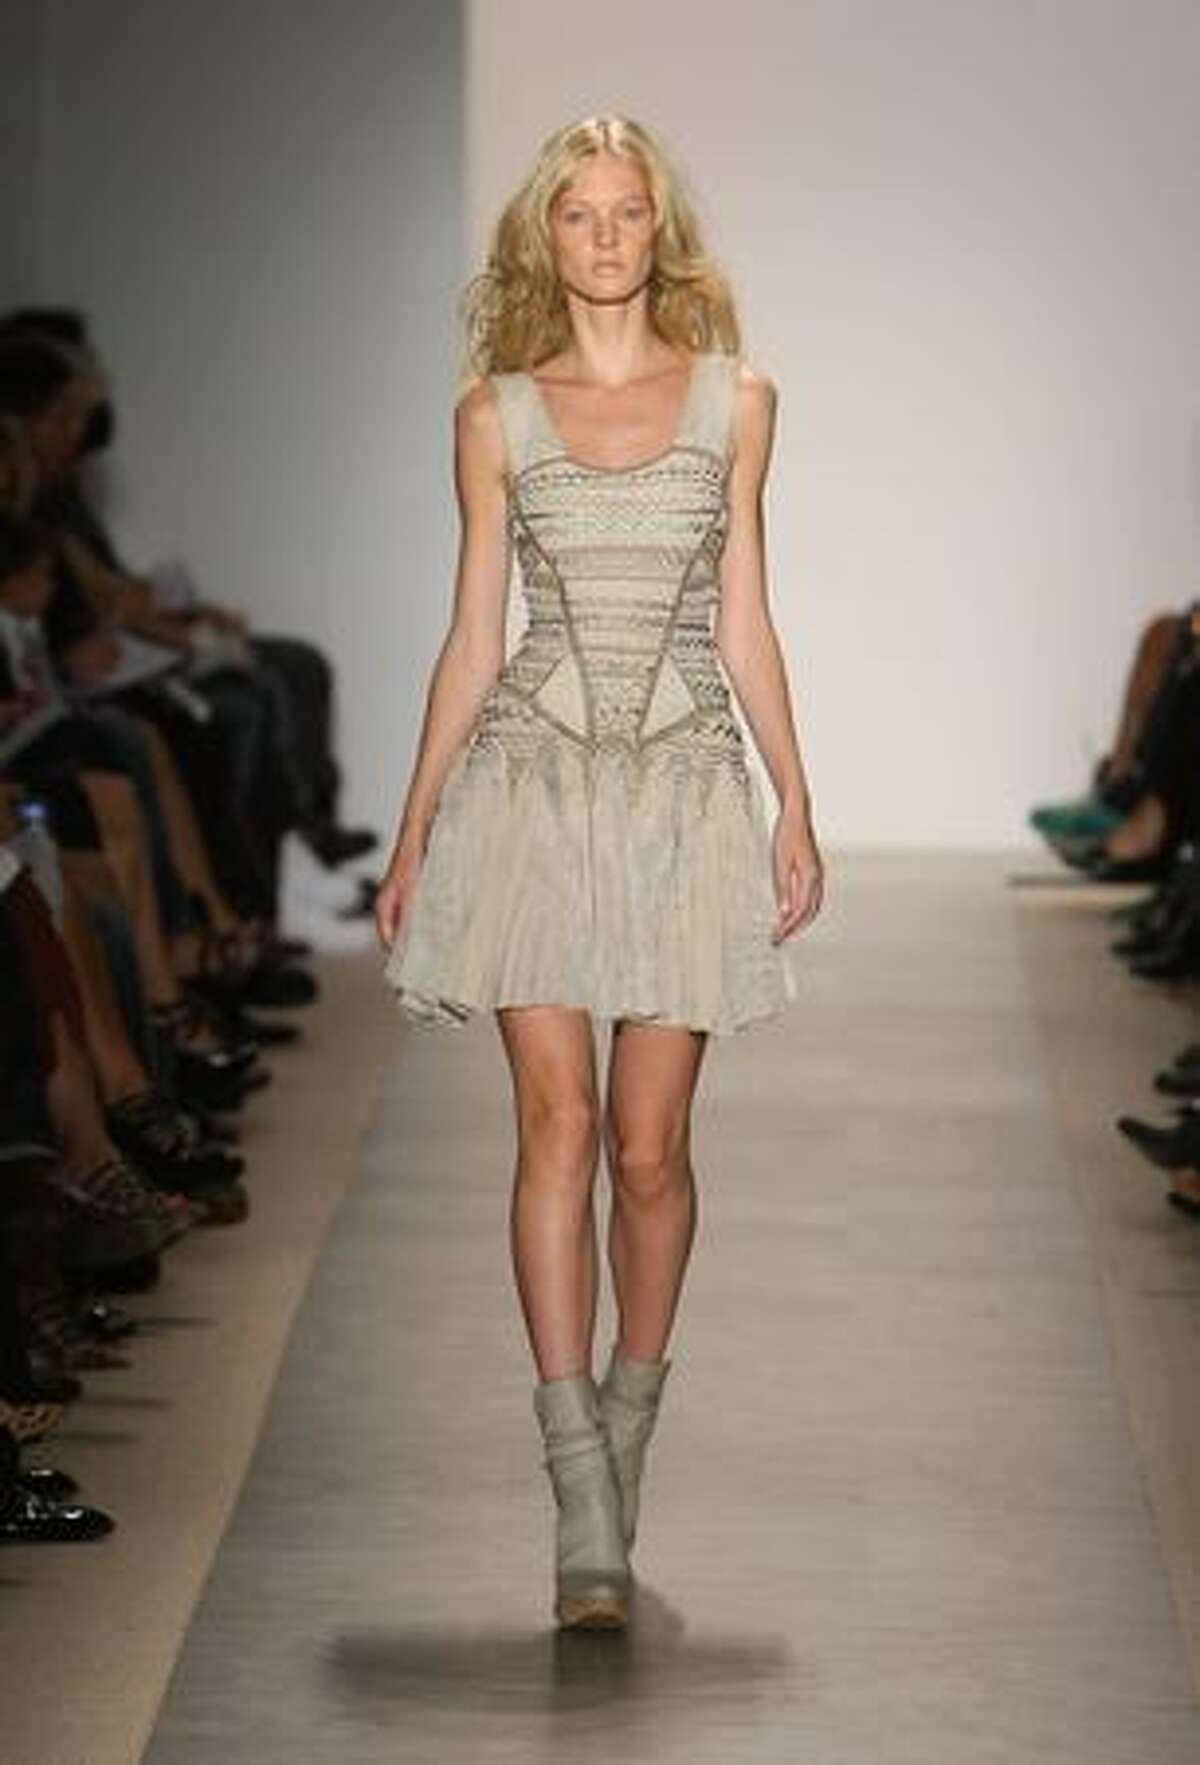 A model walks the runway during the the Herve Leger Spring 2010 Fashion Show at the Promenade at Bryant Park on Sunday in New York City.